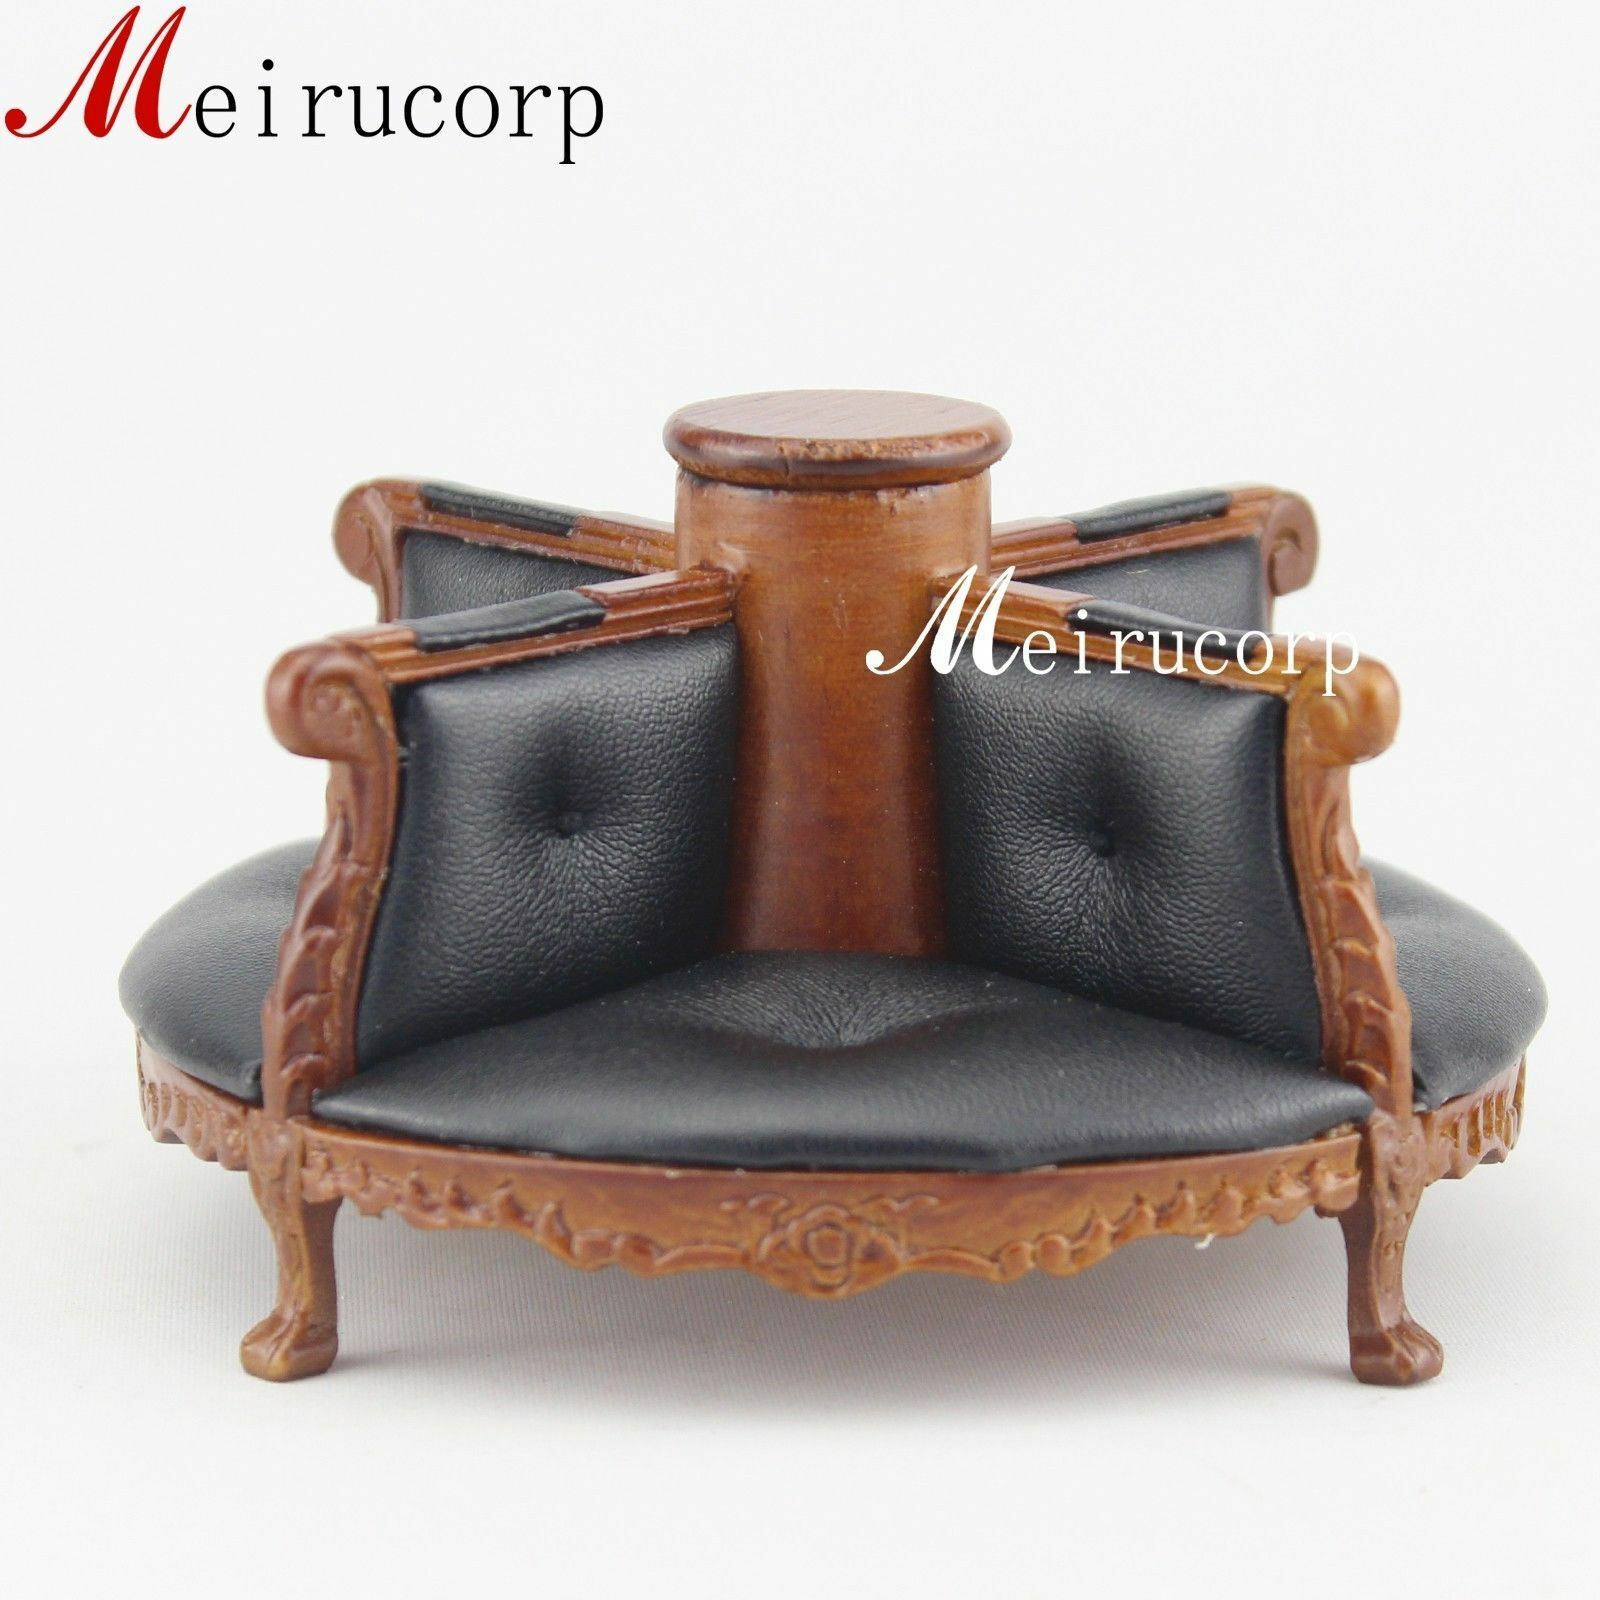 1:12 scale miniature furniture hand carved wooden Pelle chair for dollhouse